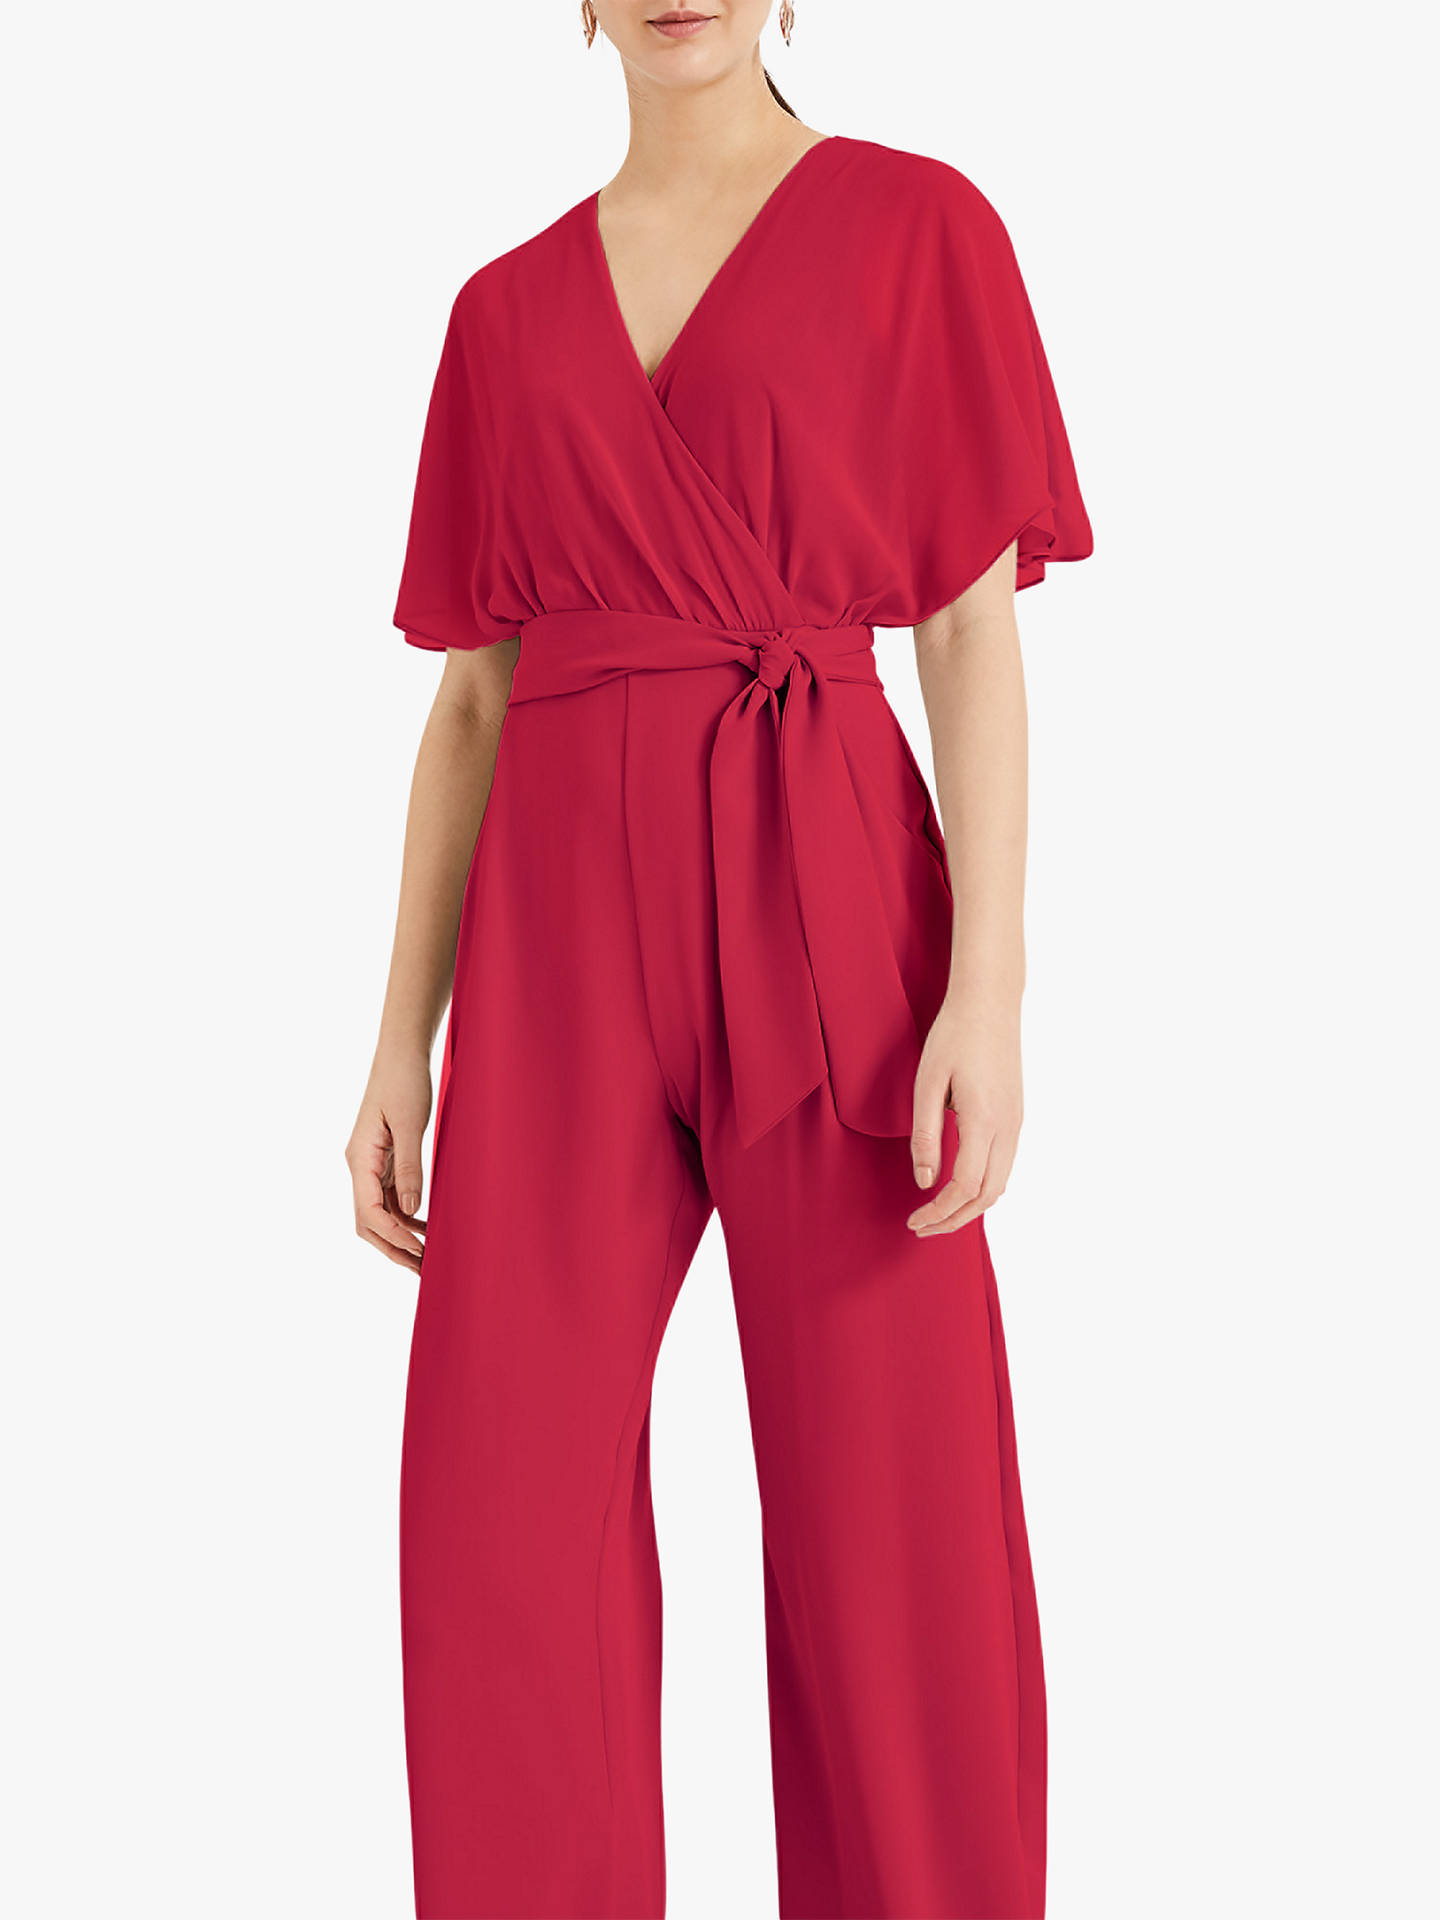 ab132a5b733 ... Buy Phase Eight Munroe Batwing Tie Waist Jumpsuit